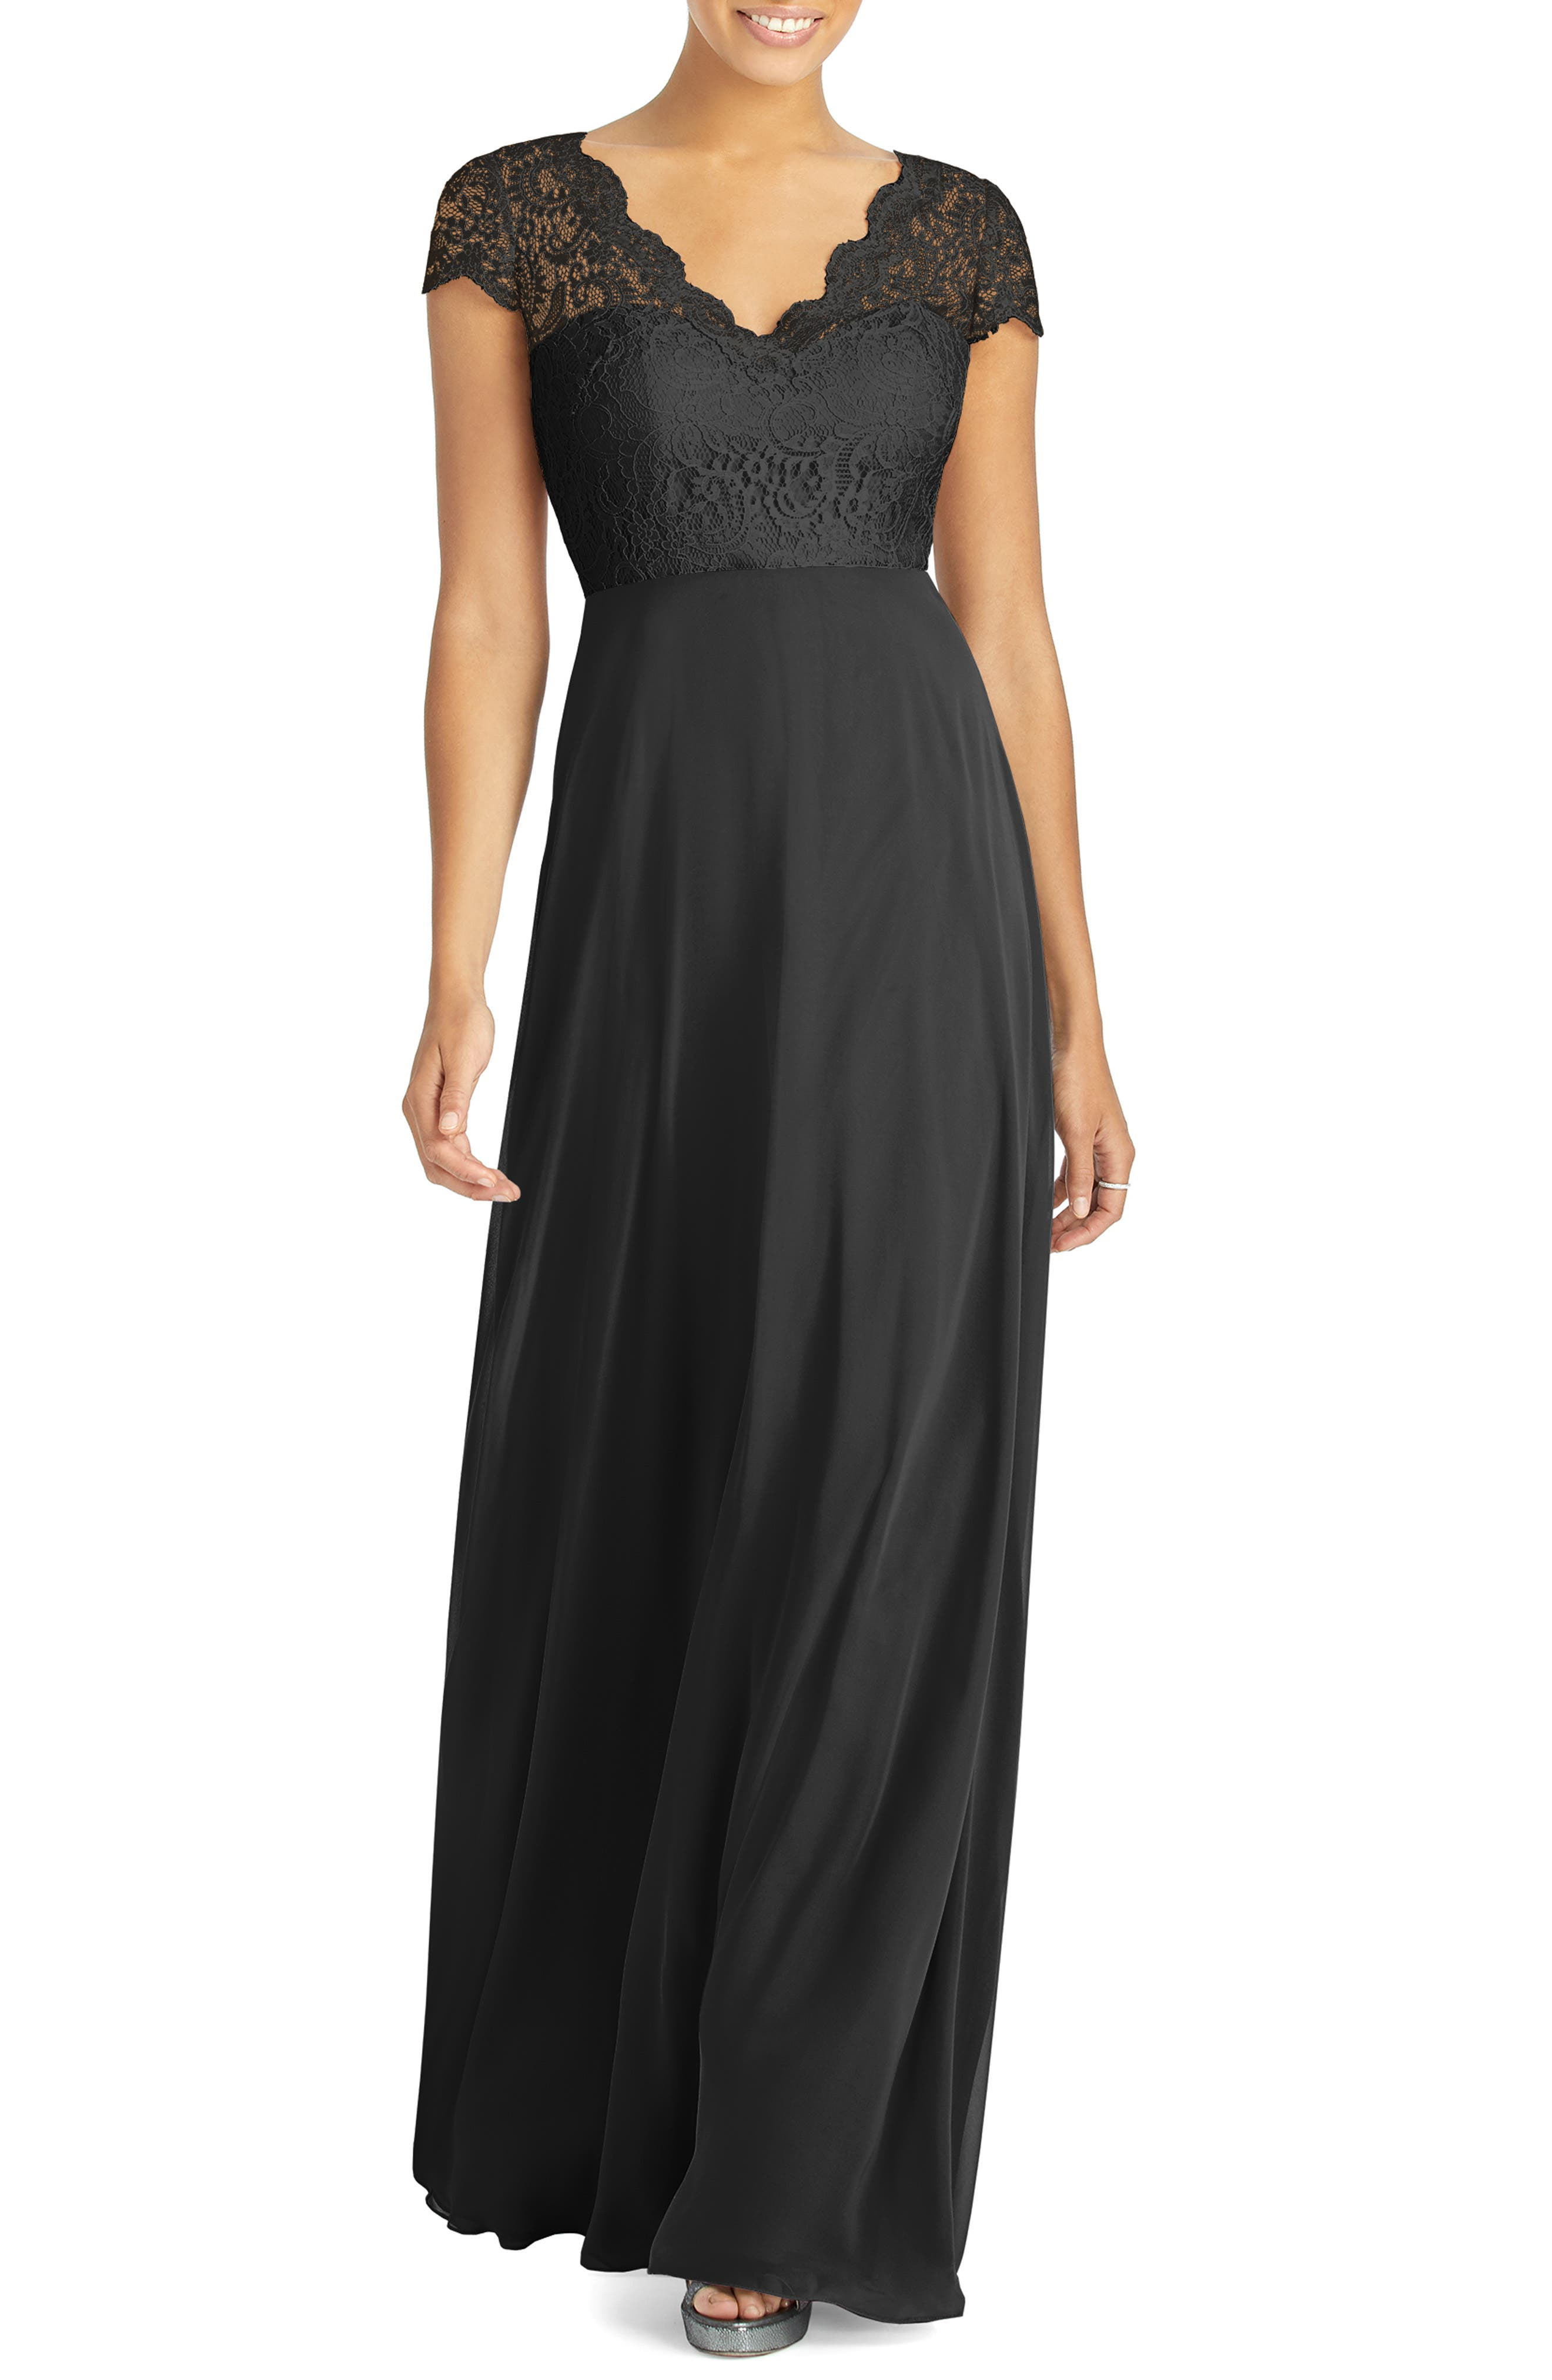 DESSY COLLECTION, Cap Sleeve Lace & Chiffon Gown, Main thumbnail 1, color, BLACK